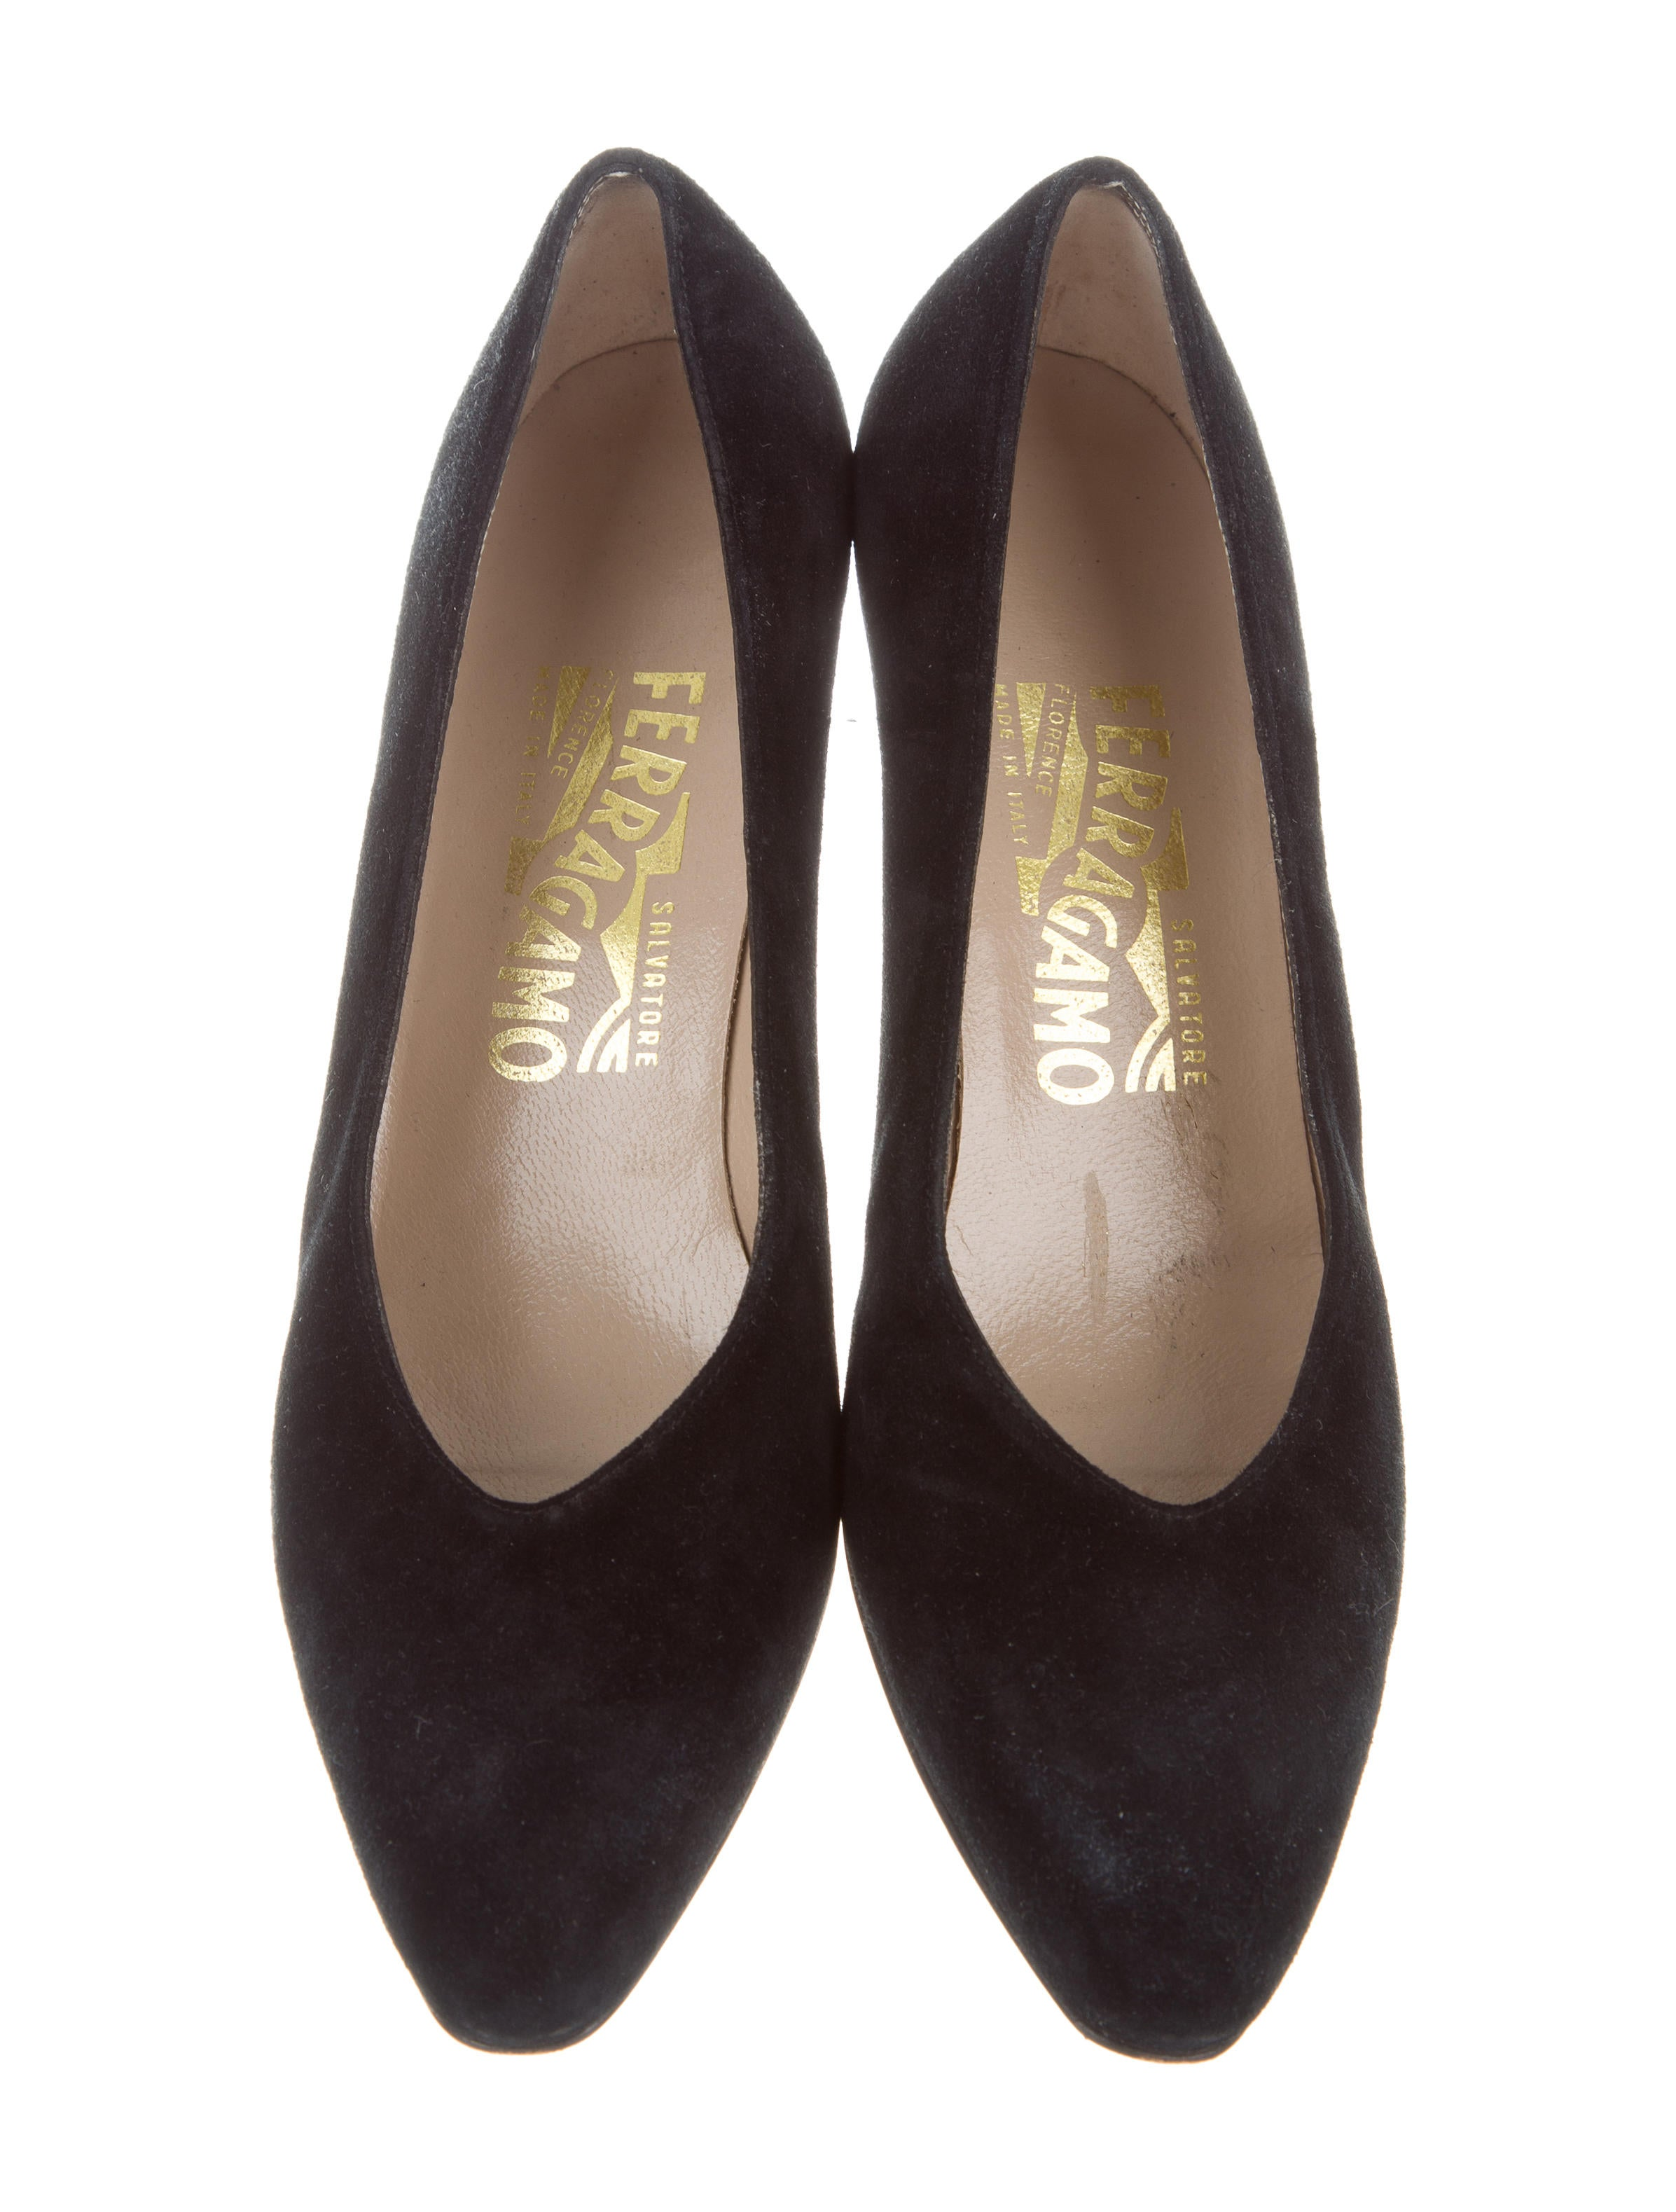 salvatore ferragamo suede pointed toe pumps shoes sal53259 the realreal. Black Bedroom Furniture Sets. Home Design Ideas